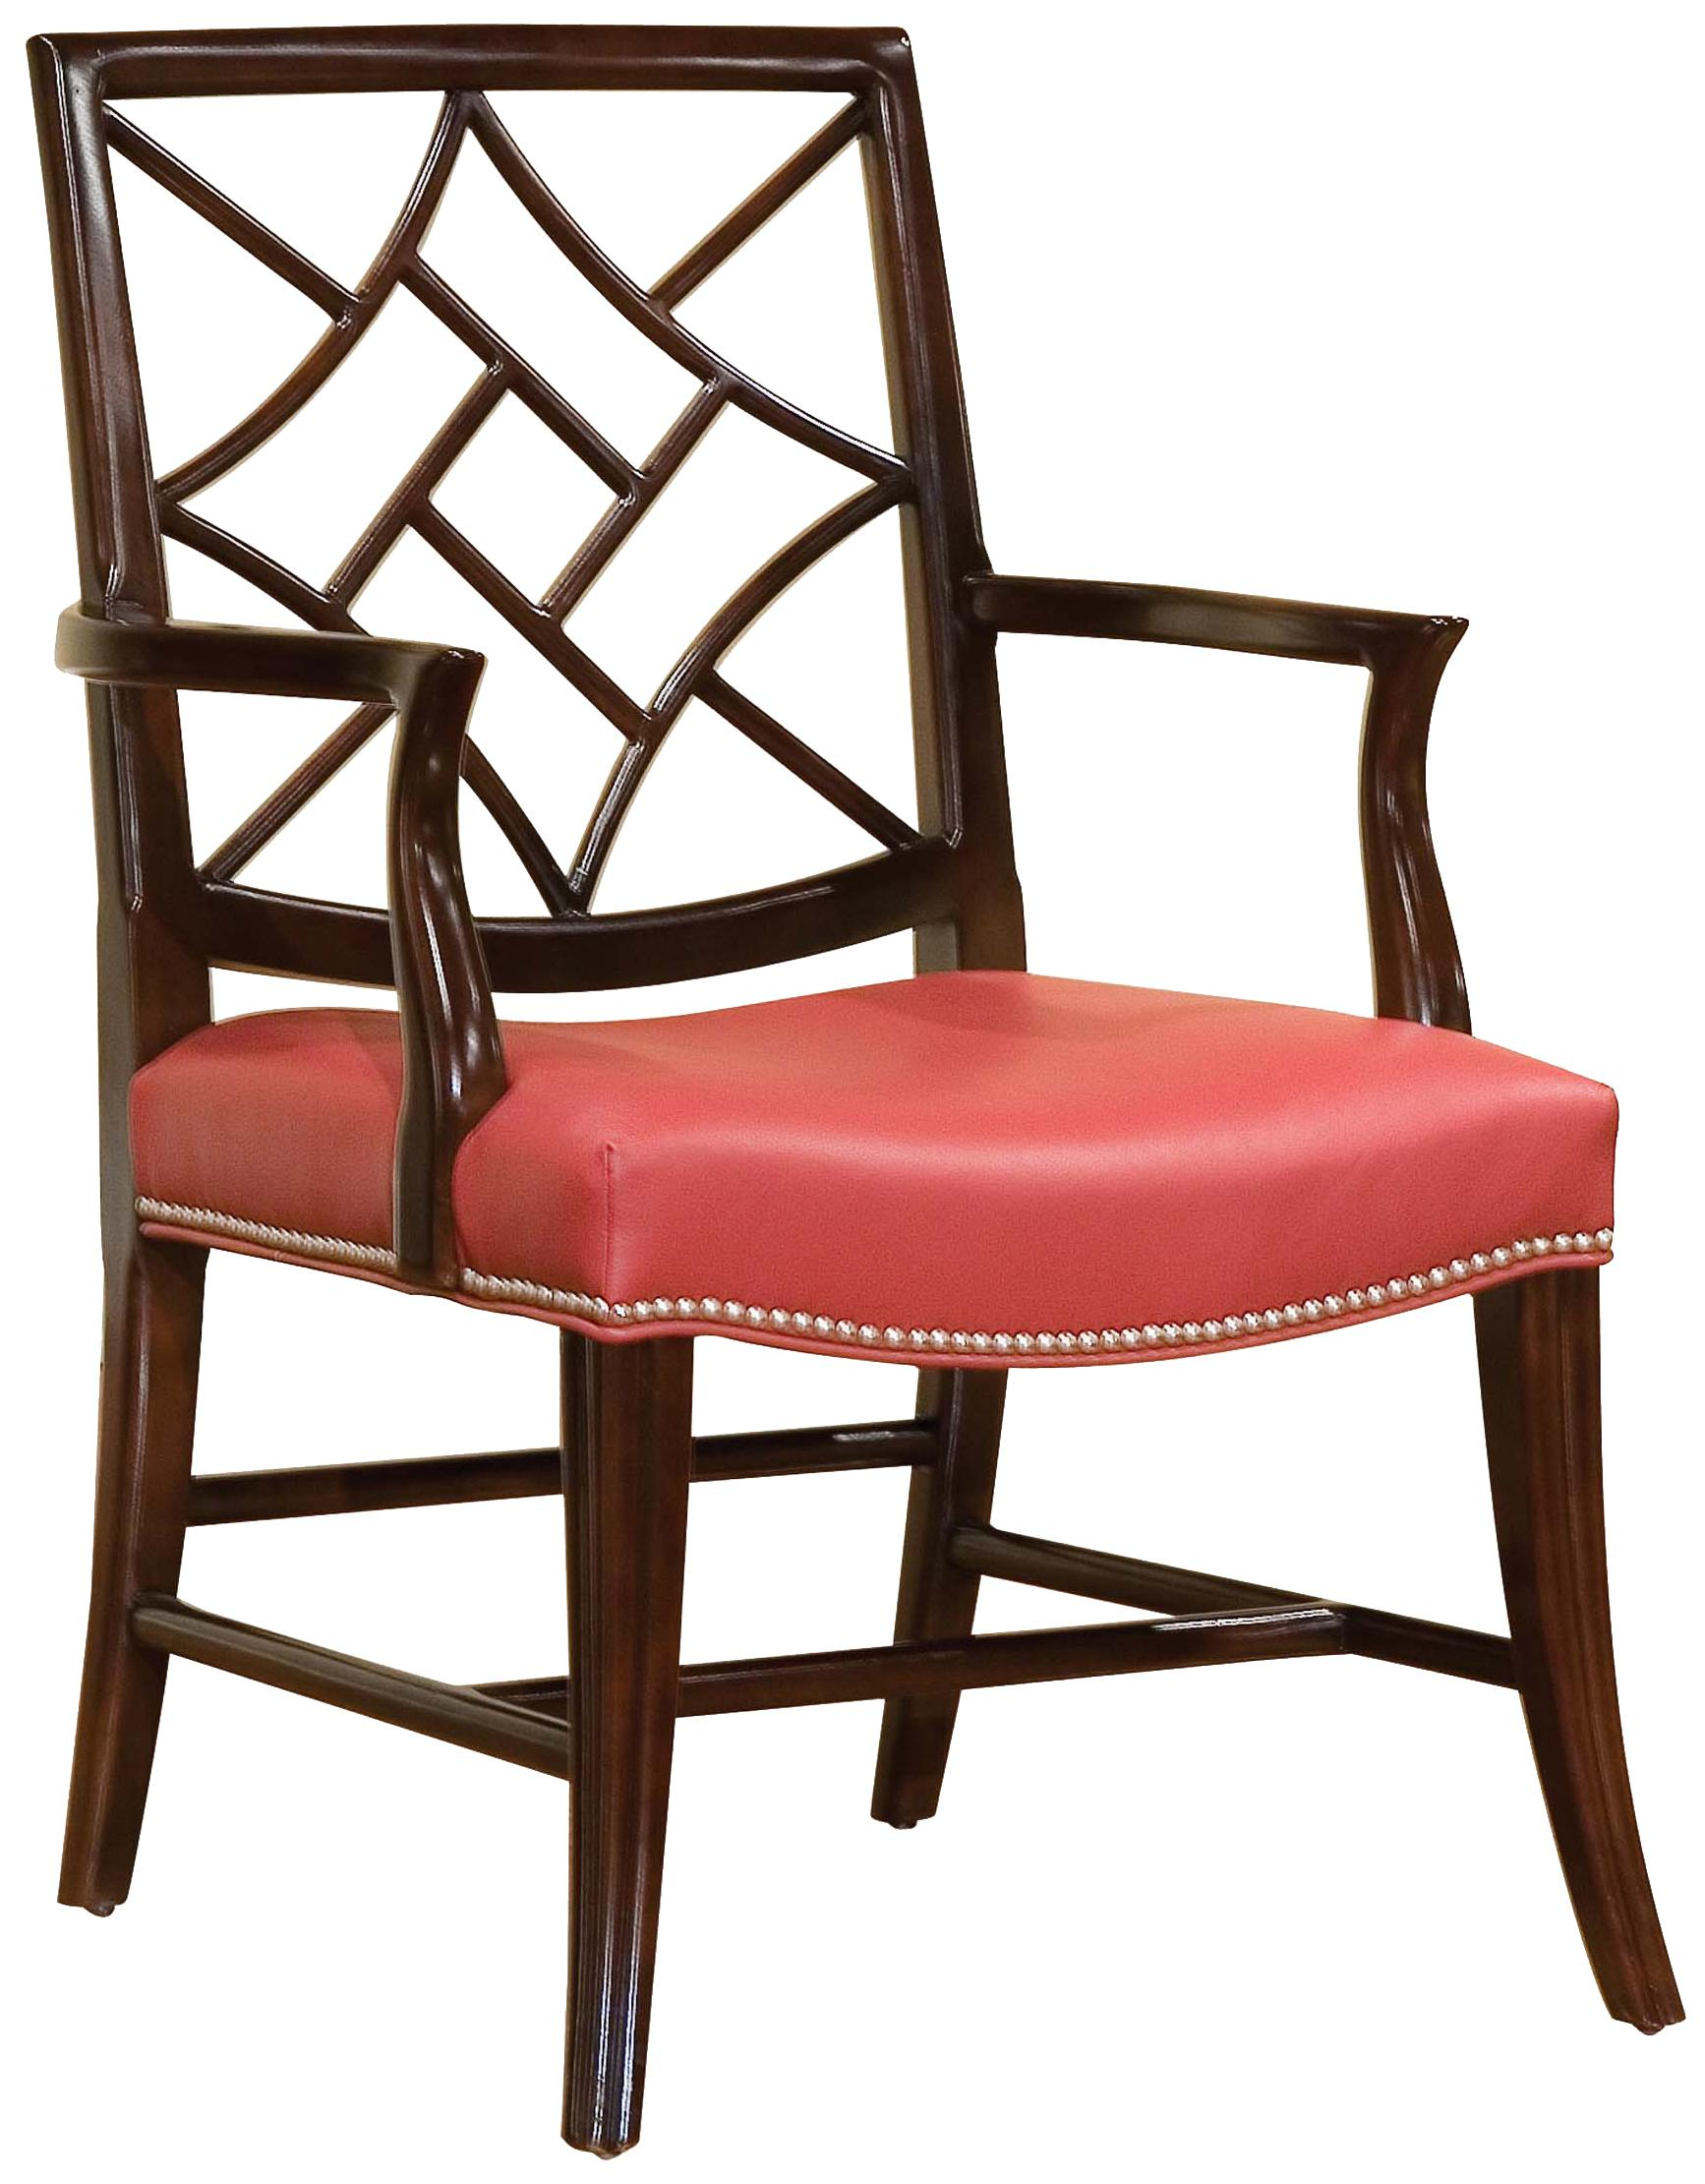 Fairfield Chairs Chair with Elegant Back Cut-Out - Item Number: 5460-01